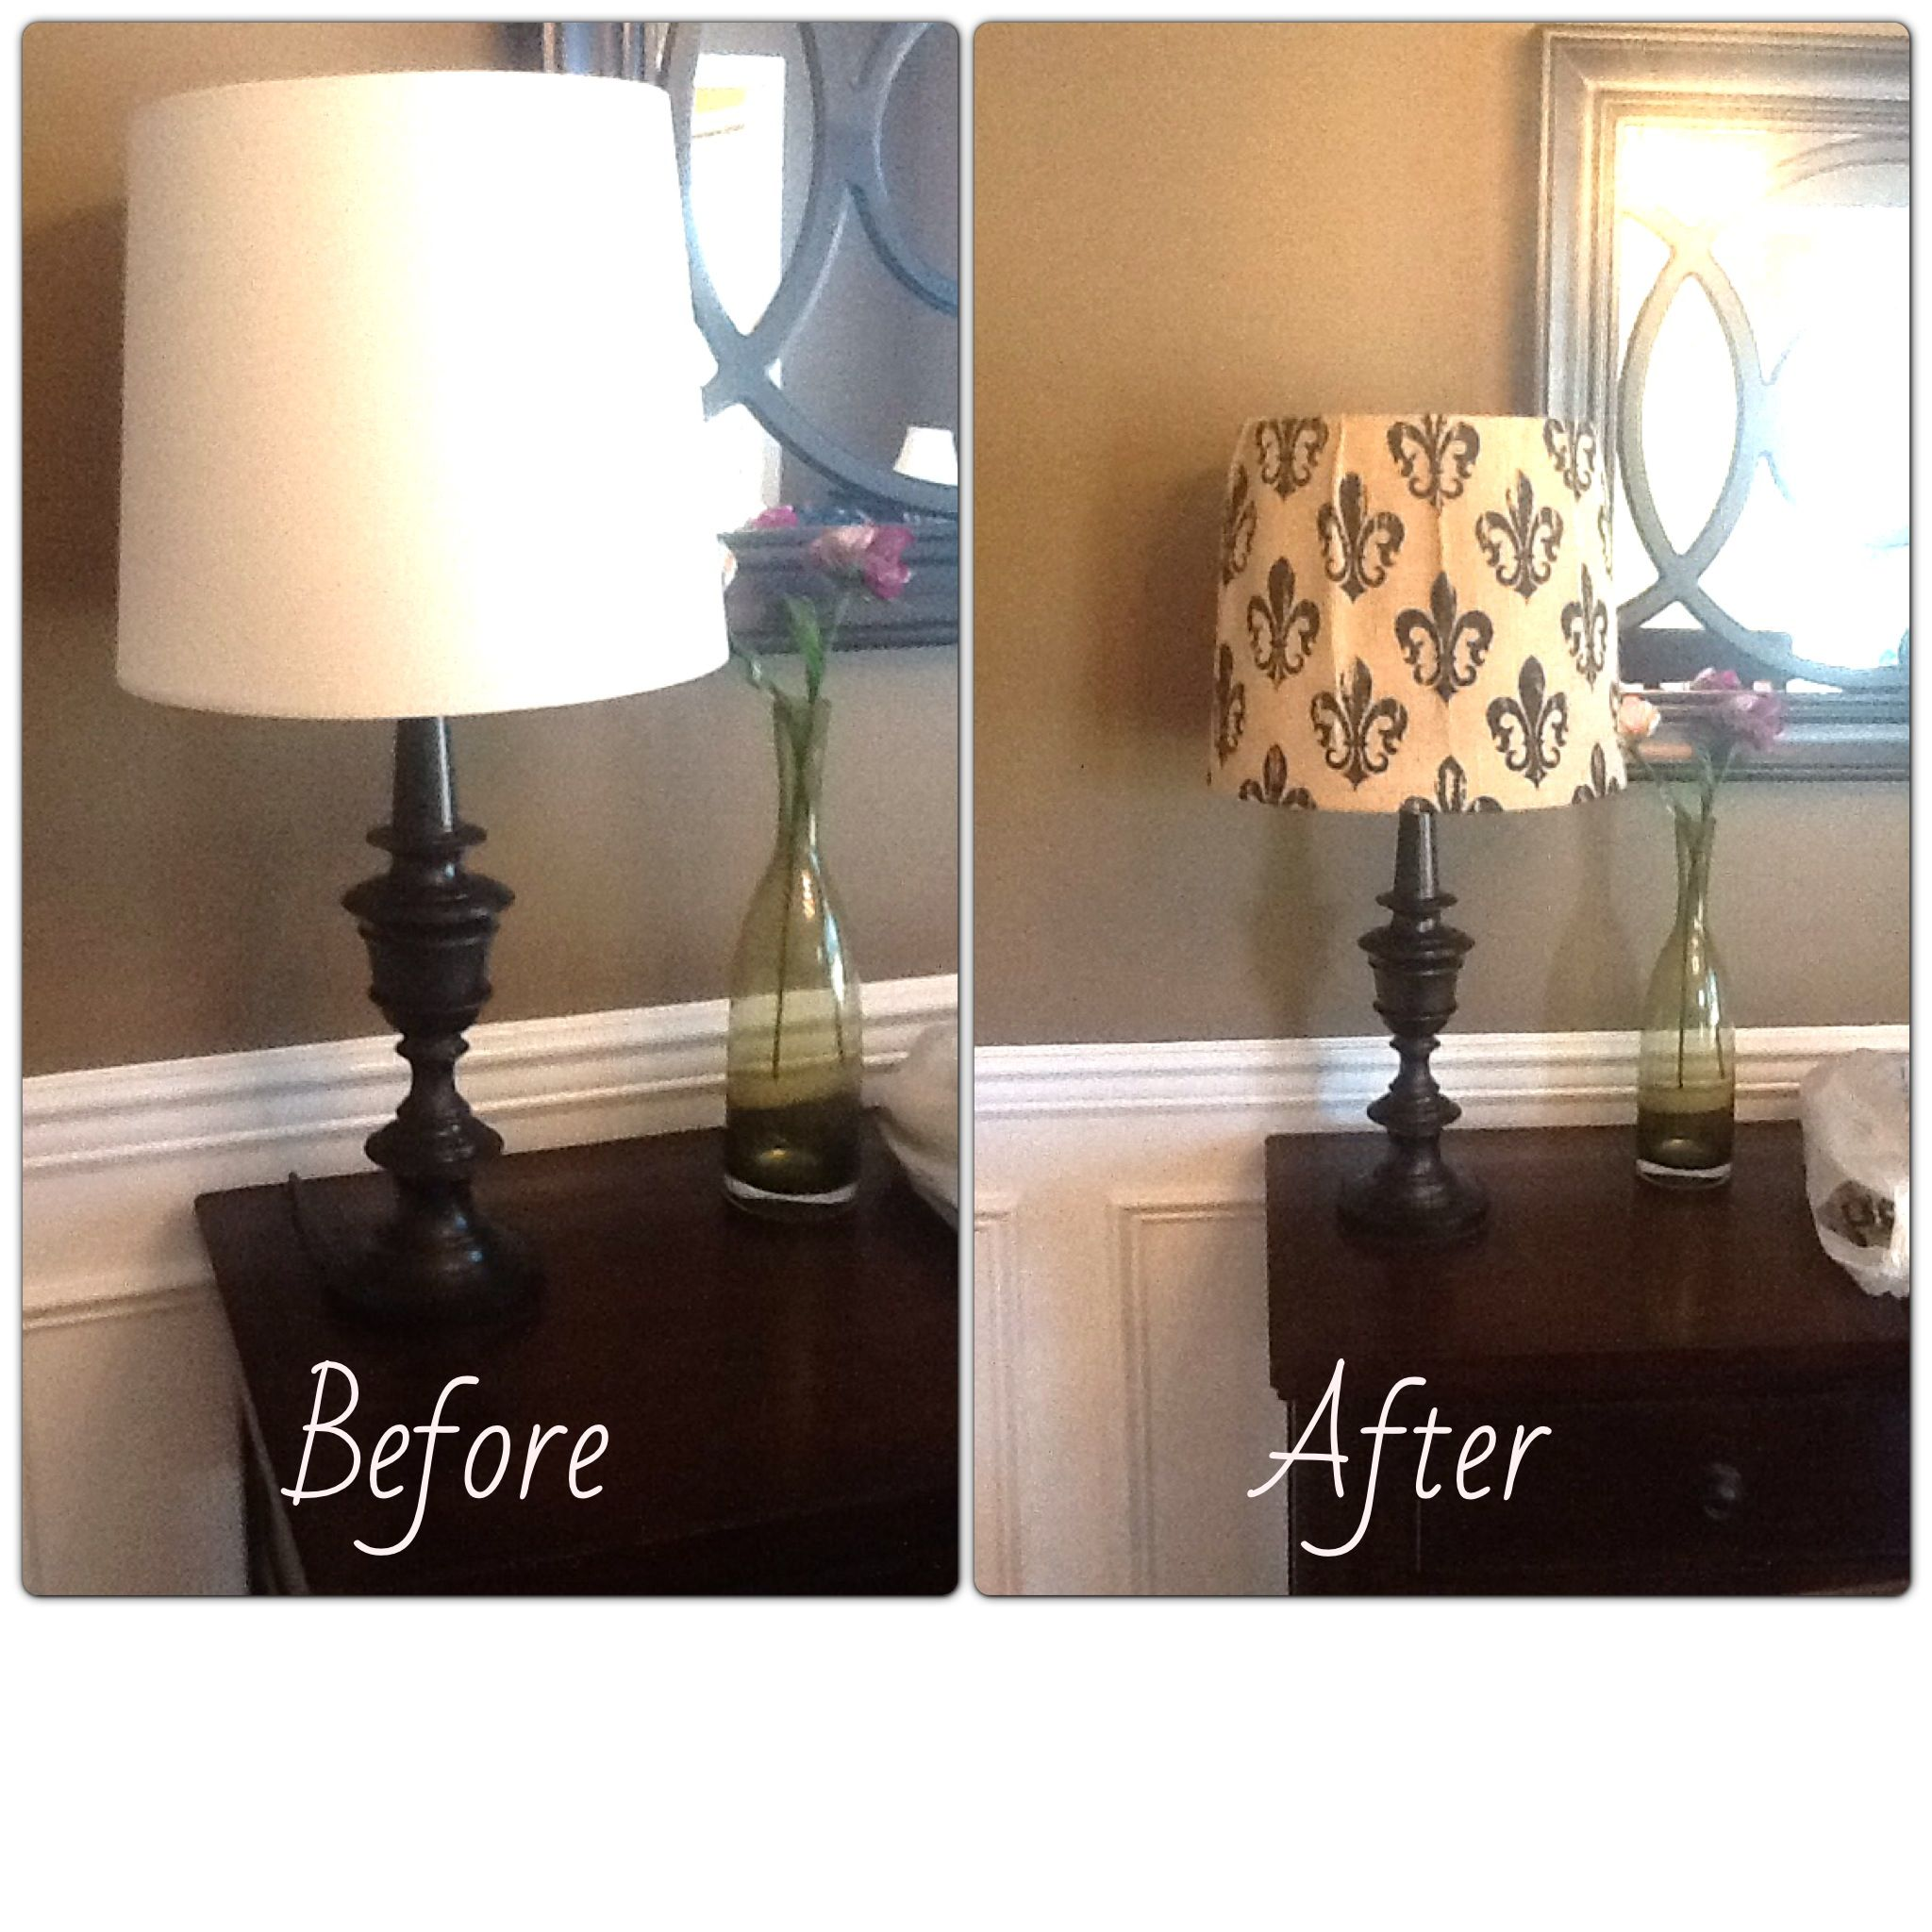 Hobby Lobby Lamp Shades My Easy Lamp Makeovercheap Plain White Lamp Shade With Burlap